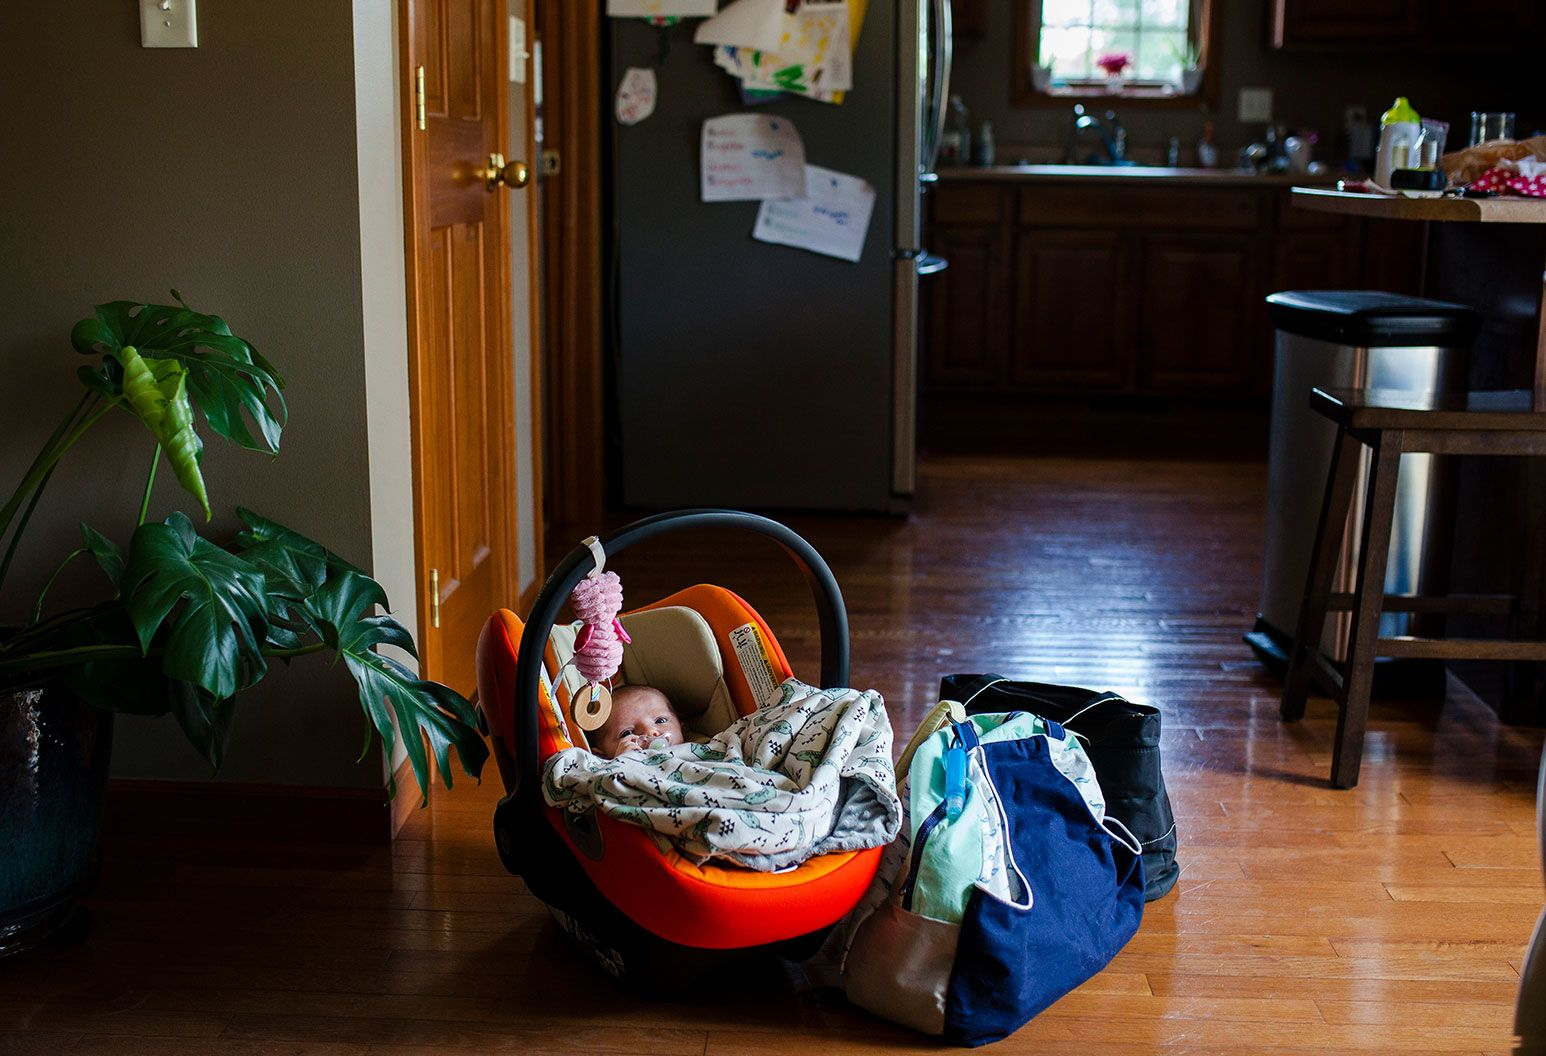 An infant carseat with a newborn in it rests on a hardwood floor in a kitchen with a blanket and a pacifier. Next to the car seat are two bags. One is green and blue, the other is black.